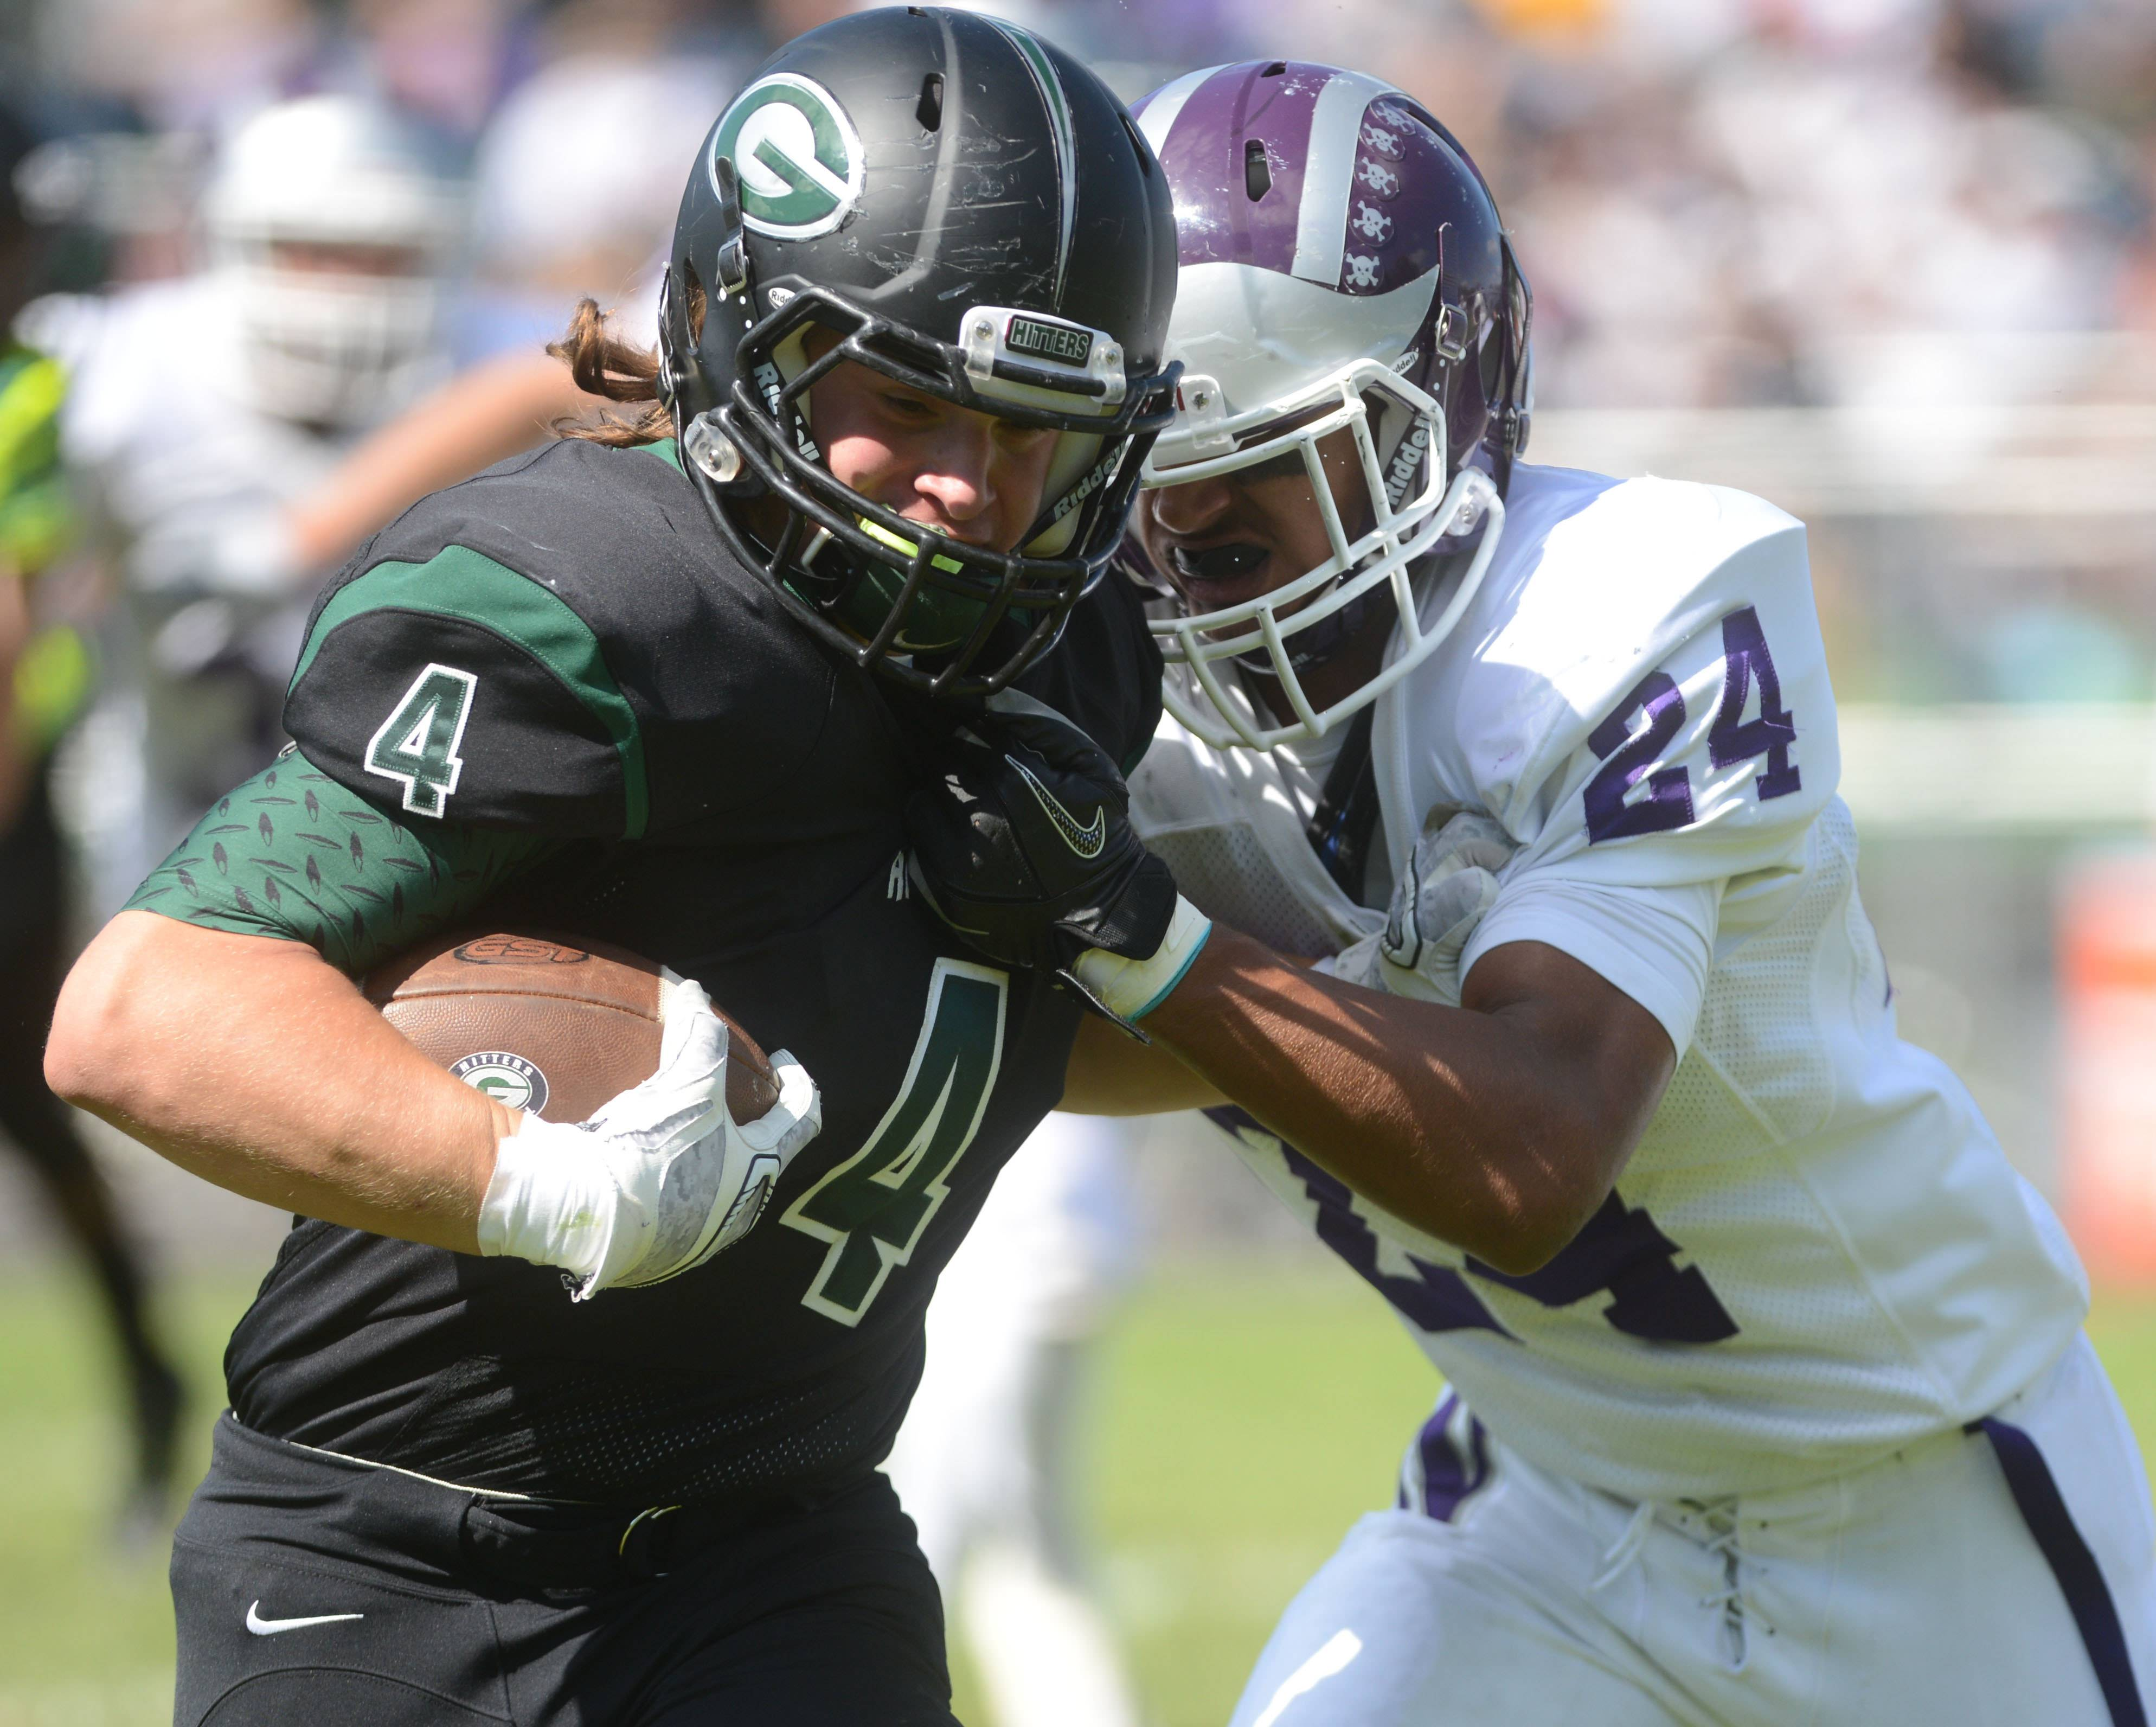 Sam Brodner of Glenbard West moves the ball around Kendrick Schultz of Downers Grove North during the Downers Grove North at Glenbard West football game Saturday.